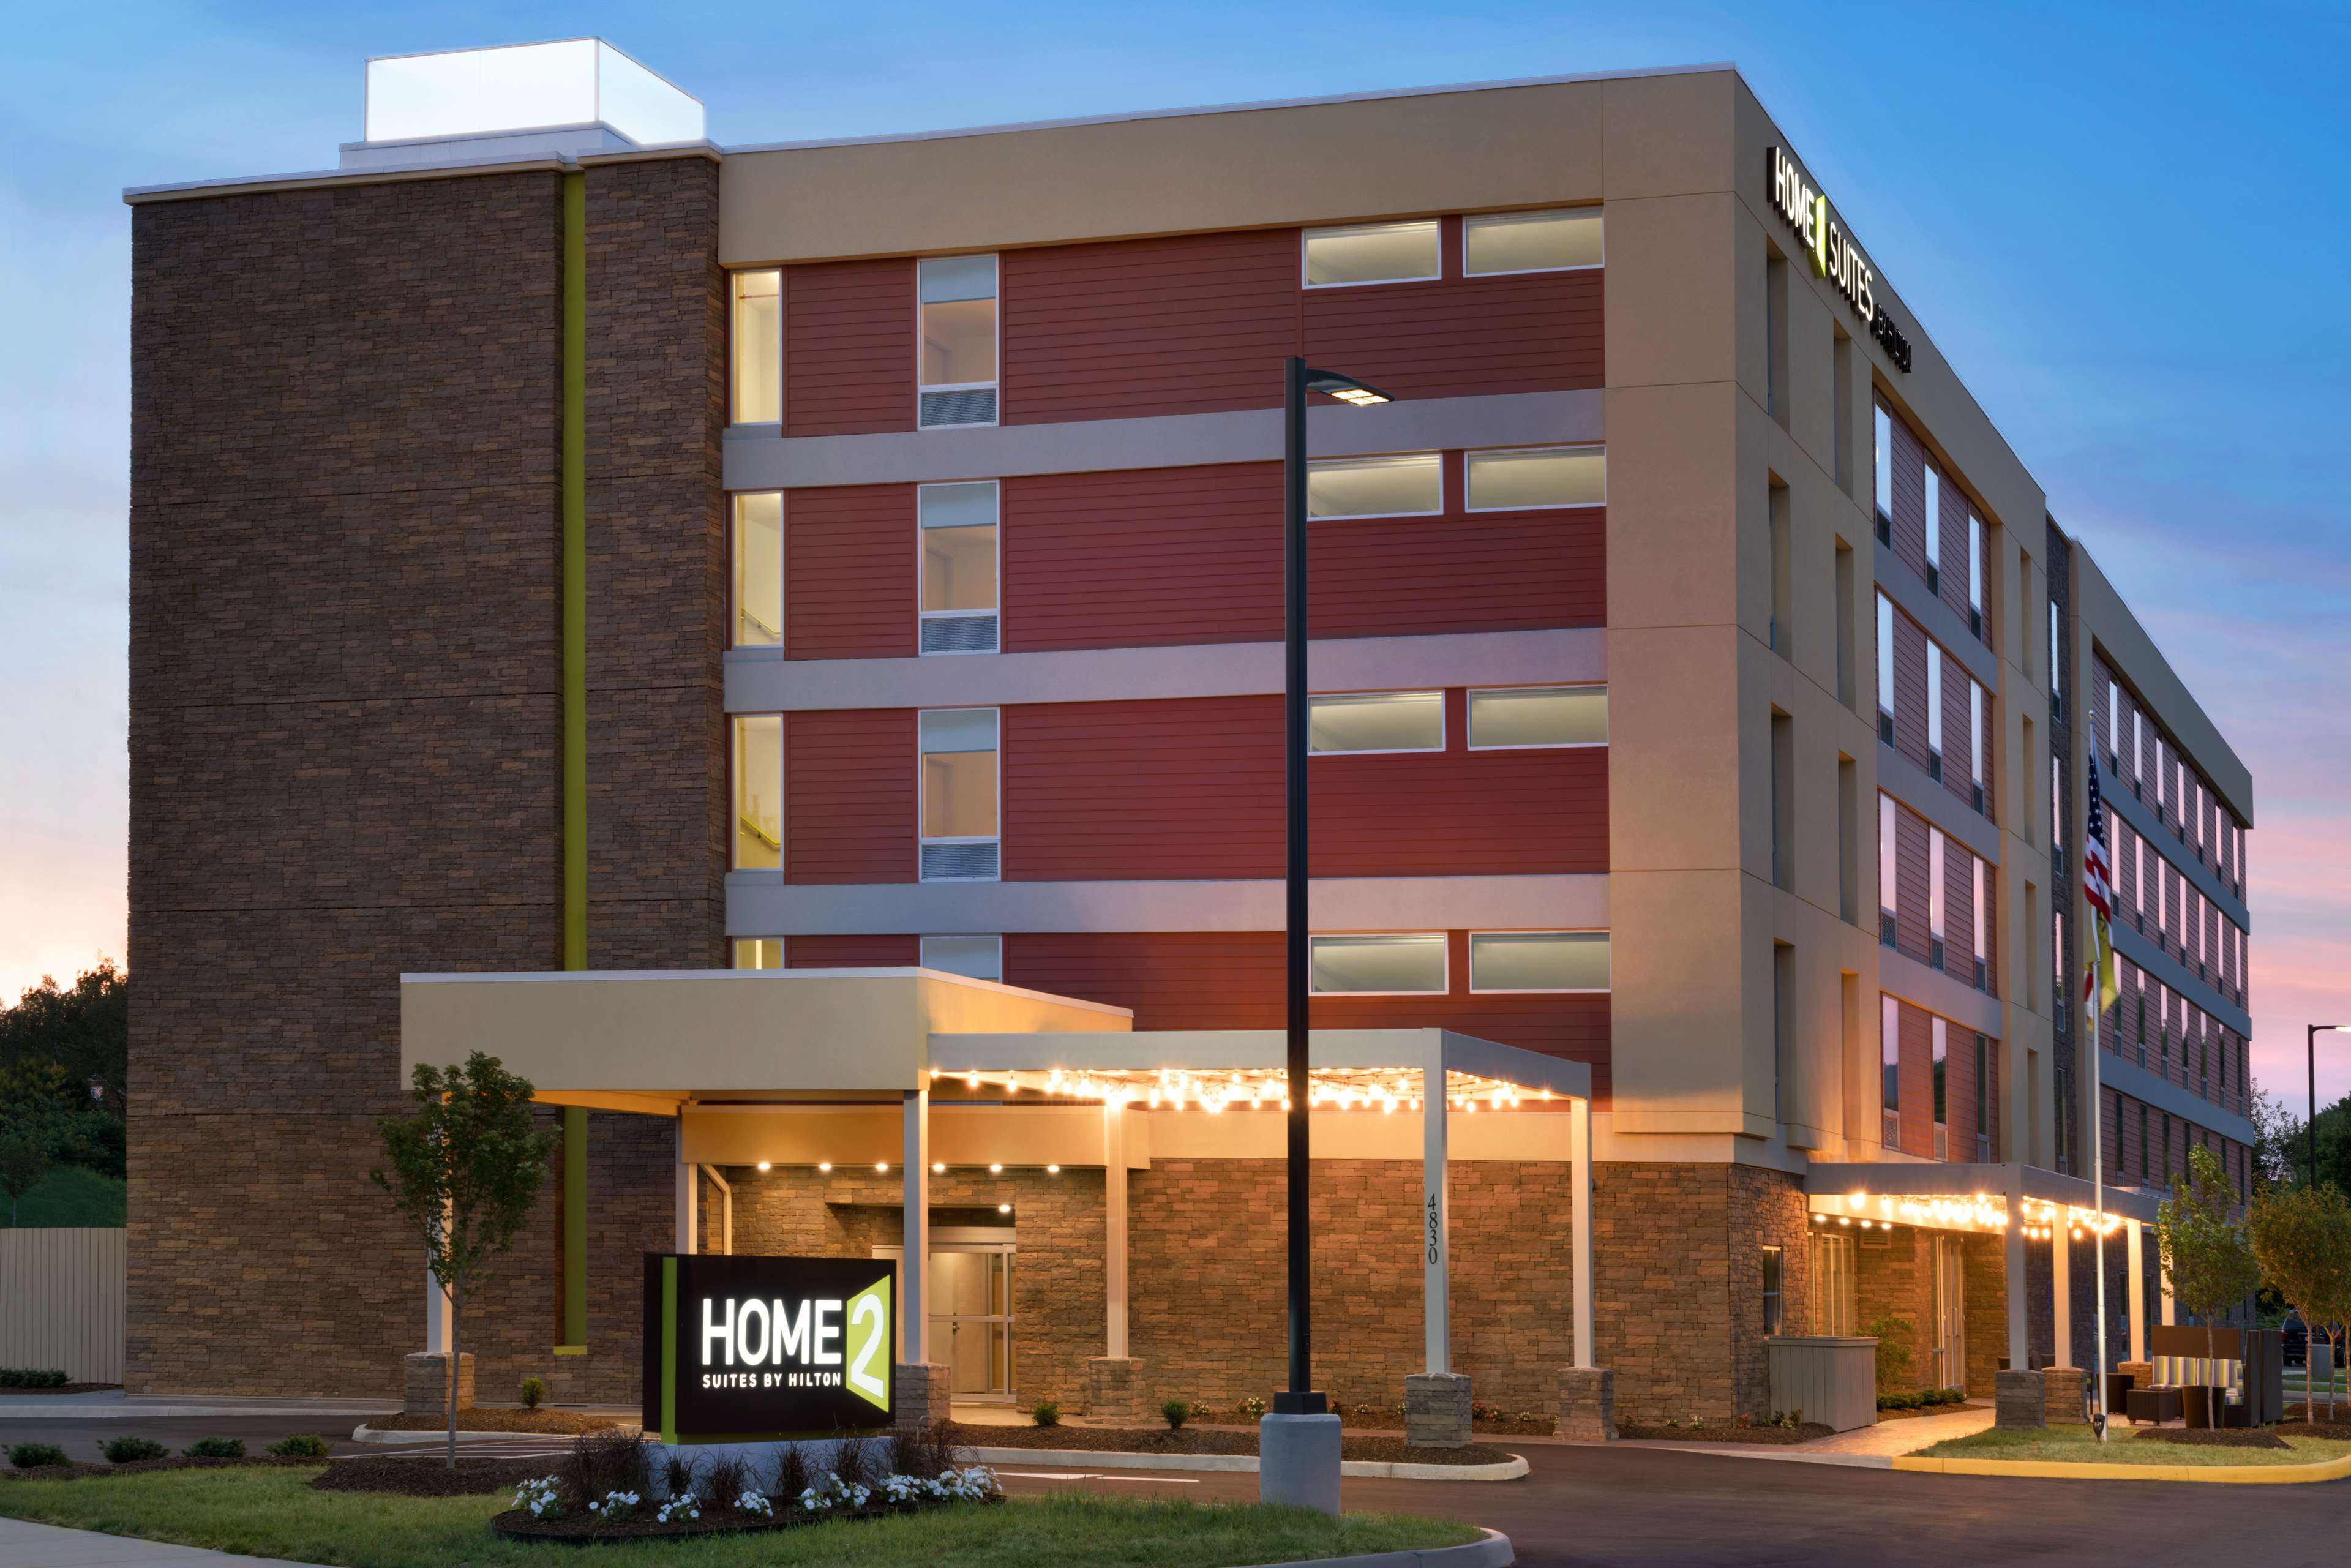 Home2 Suites by Hilton Roanoke image 2